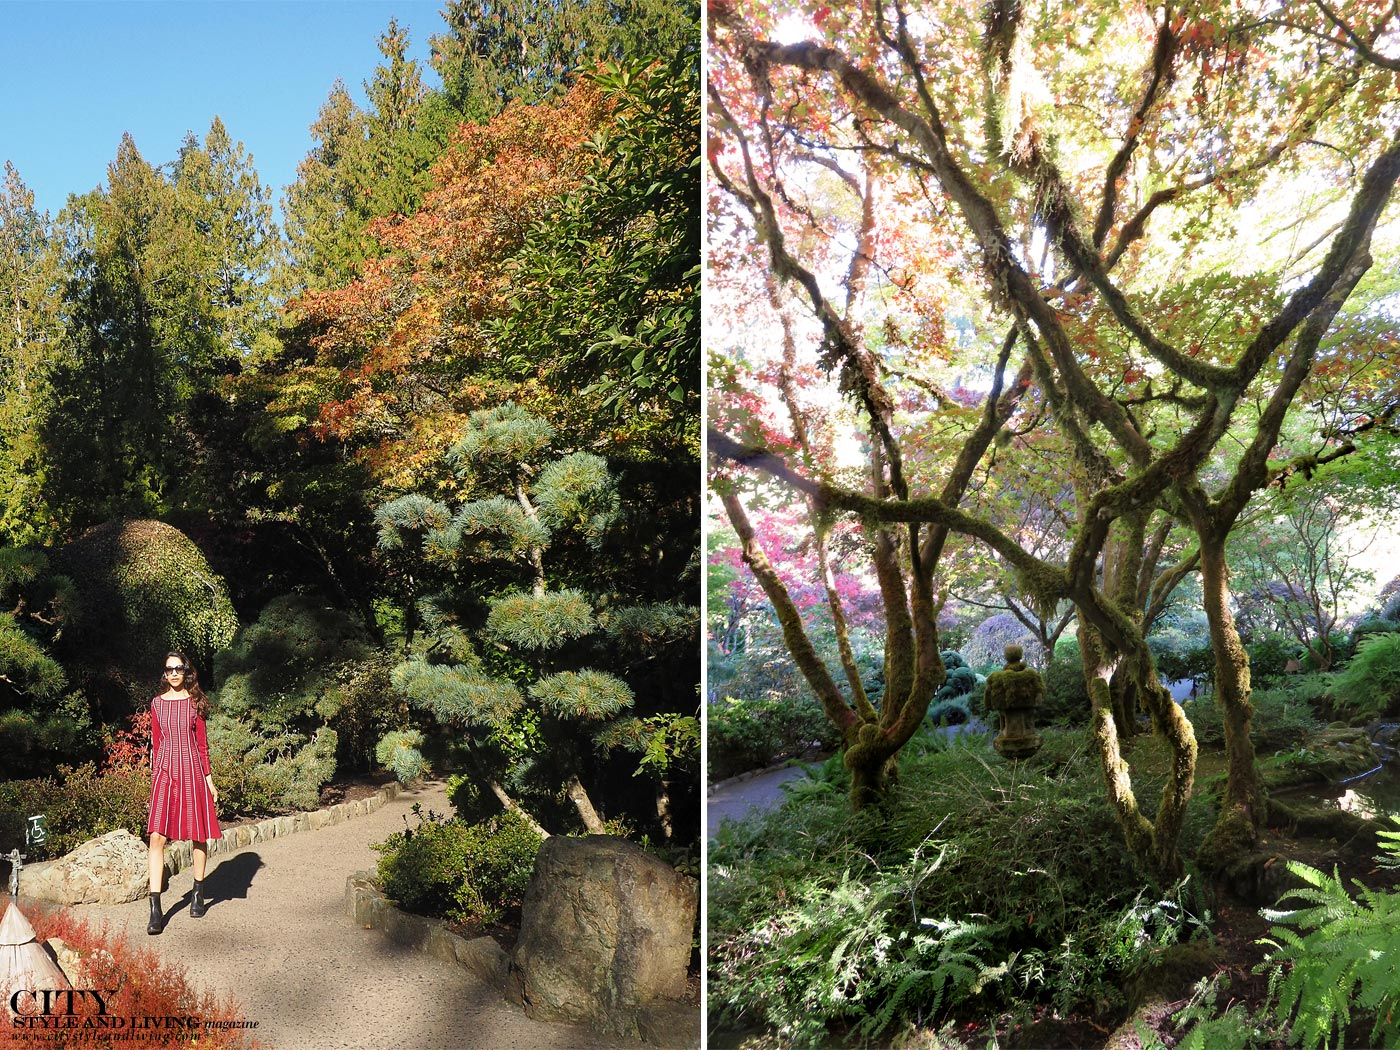 City style and living magazine Editors Notebook style fashion blogger Shivana M Butchart Japanese Gardens BCBG Max Azria fall foliage, trees